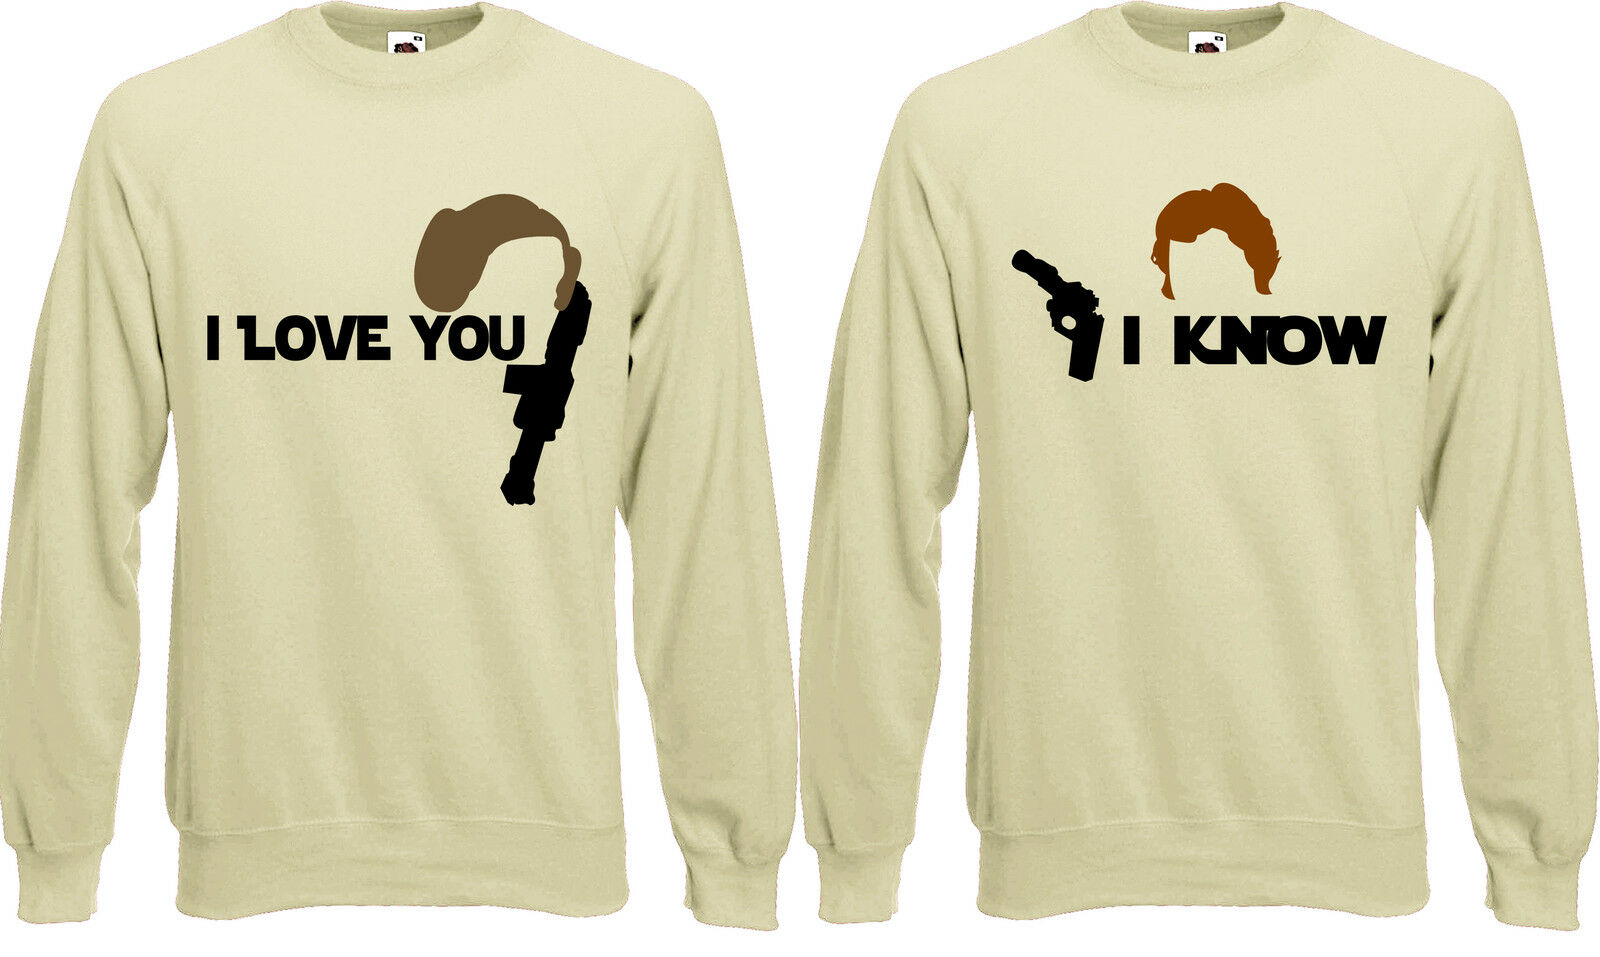 NERDY NERDY NERDY COPPIA GUERRE AMORE SAN VALENTINO SWEATER Leia & Han SILHOUETTE  so  AF58 5c4cef